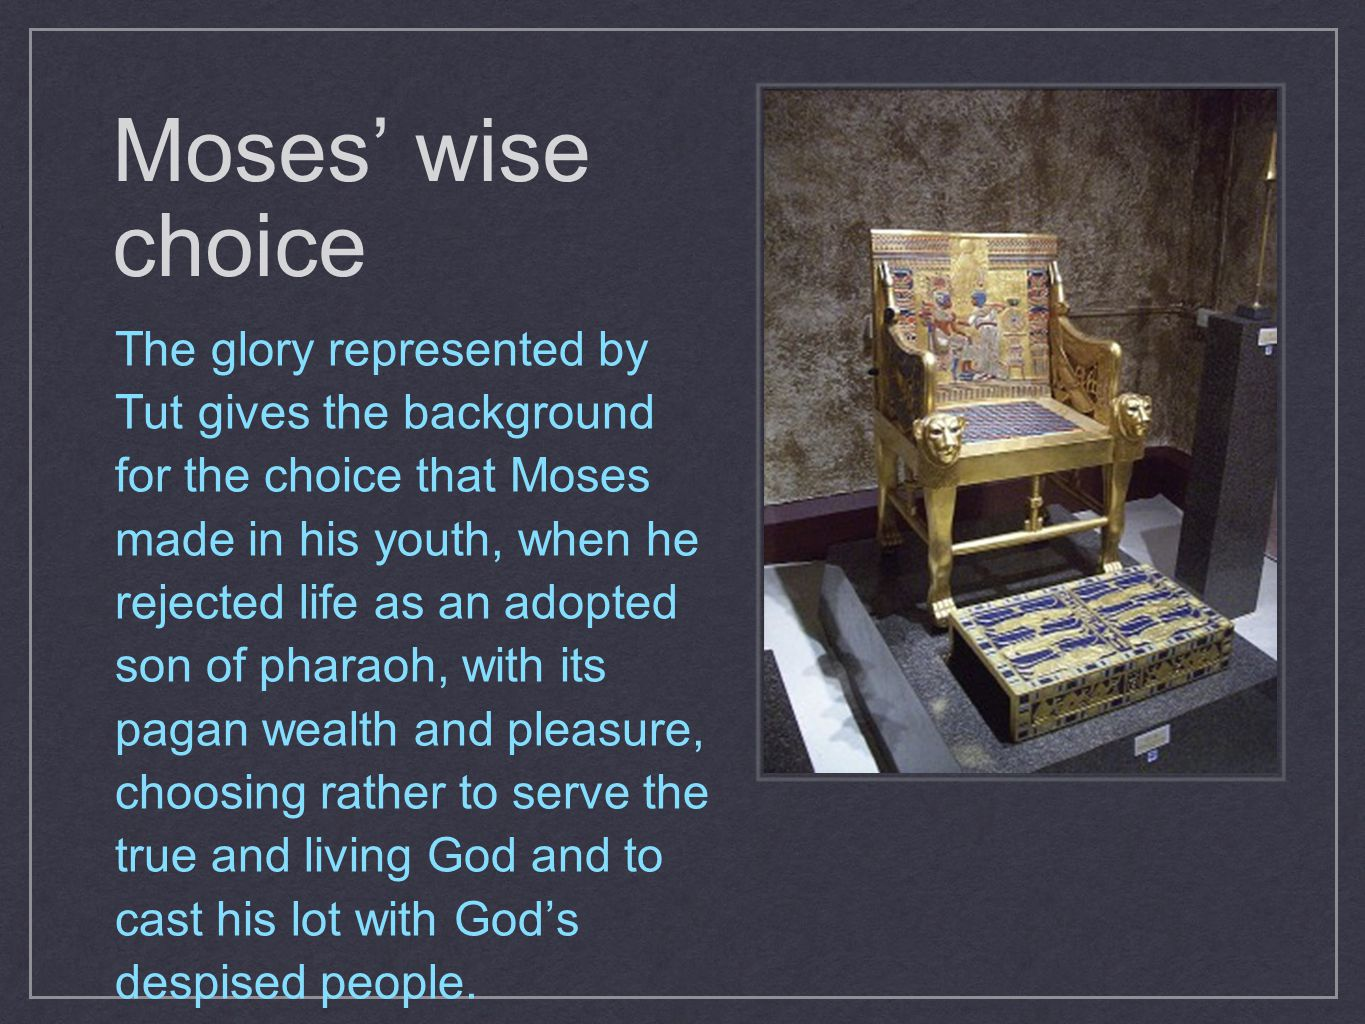 Moses' wise choice The glory represented by Tut gives the background for the choice that Moses made in his youth, when he rejected life as an adopted son of pharaoh, with its pagan wealth and pleasure, choosing rather to serve the true and living God and to cast his lot with God's despised people.